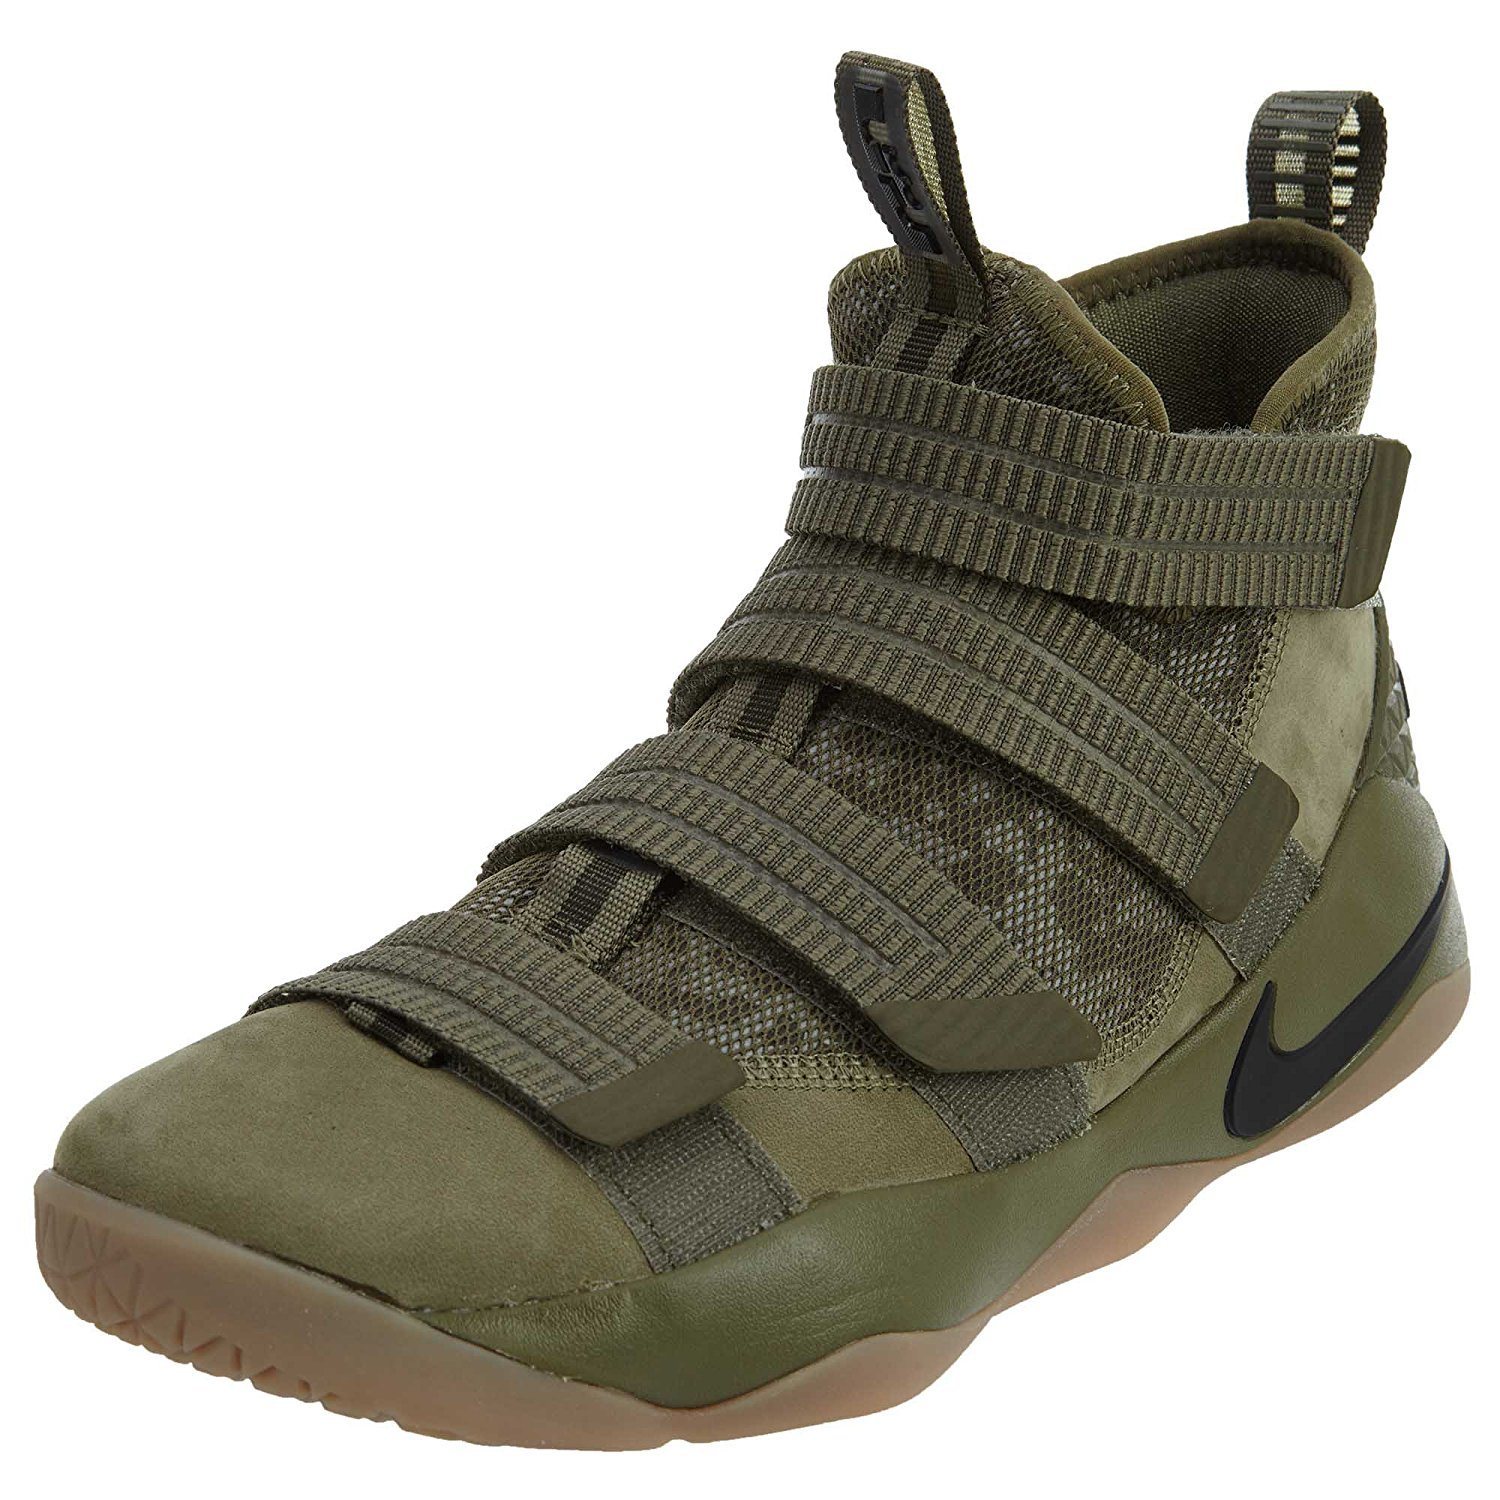 newest 4ef36 a829b Galleon - NIKE Lebron Soldier Xi SFG Men s Basketball Shoes (10 D(M) US,  Medium Olive Black)